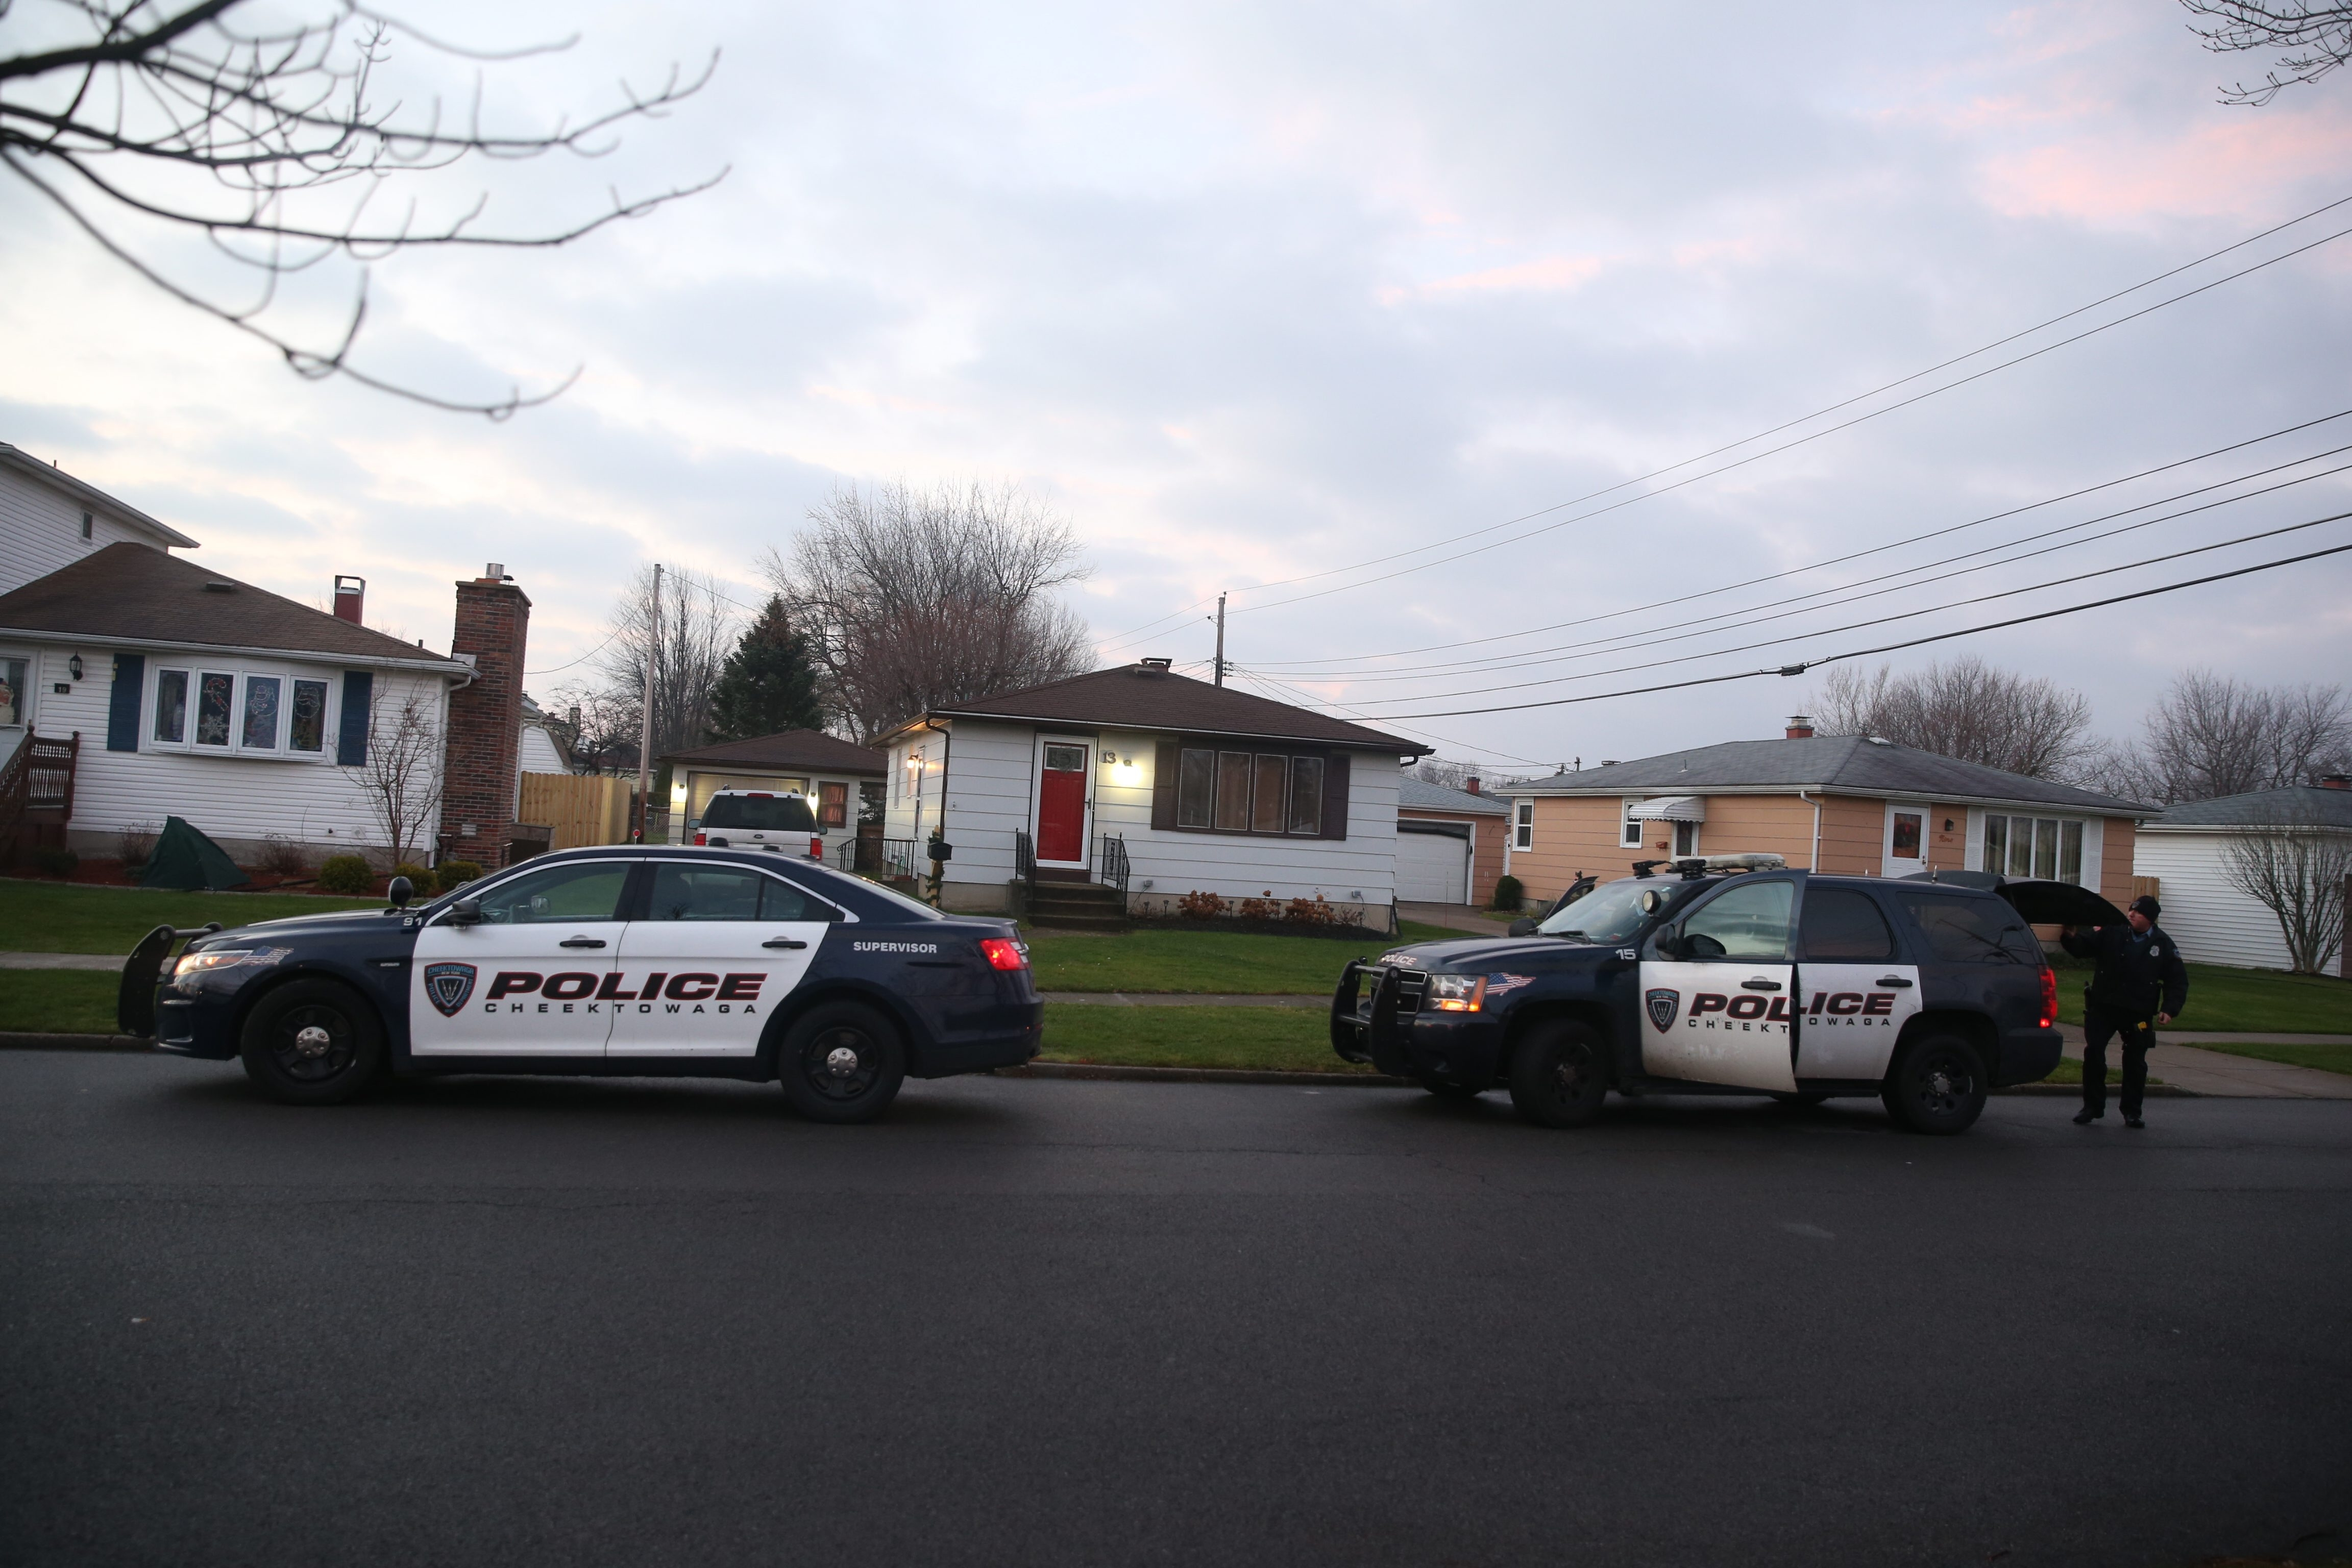 Cheektowaga police investigate Thursday at 13 Florette Drive W., where a man told police that he confronted four males in his driveway early that morning. He said one attacked him with a bat.